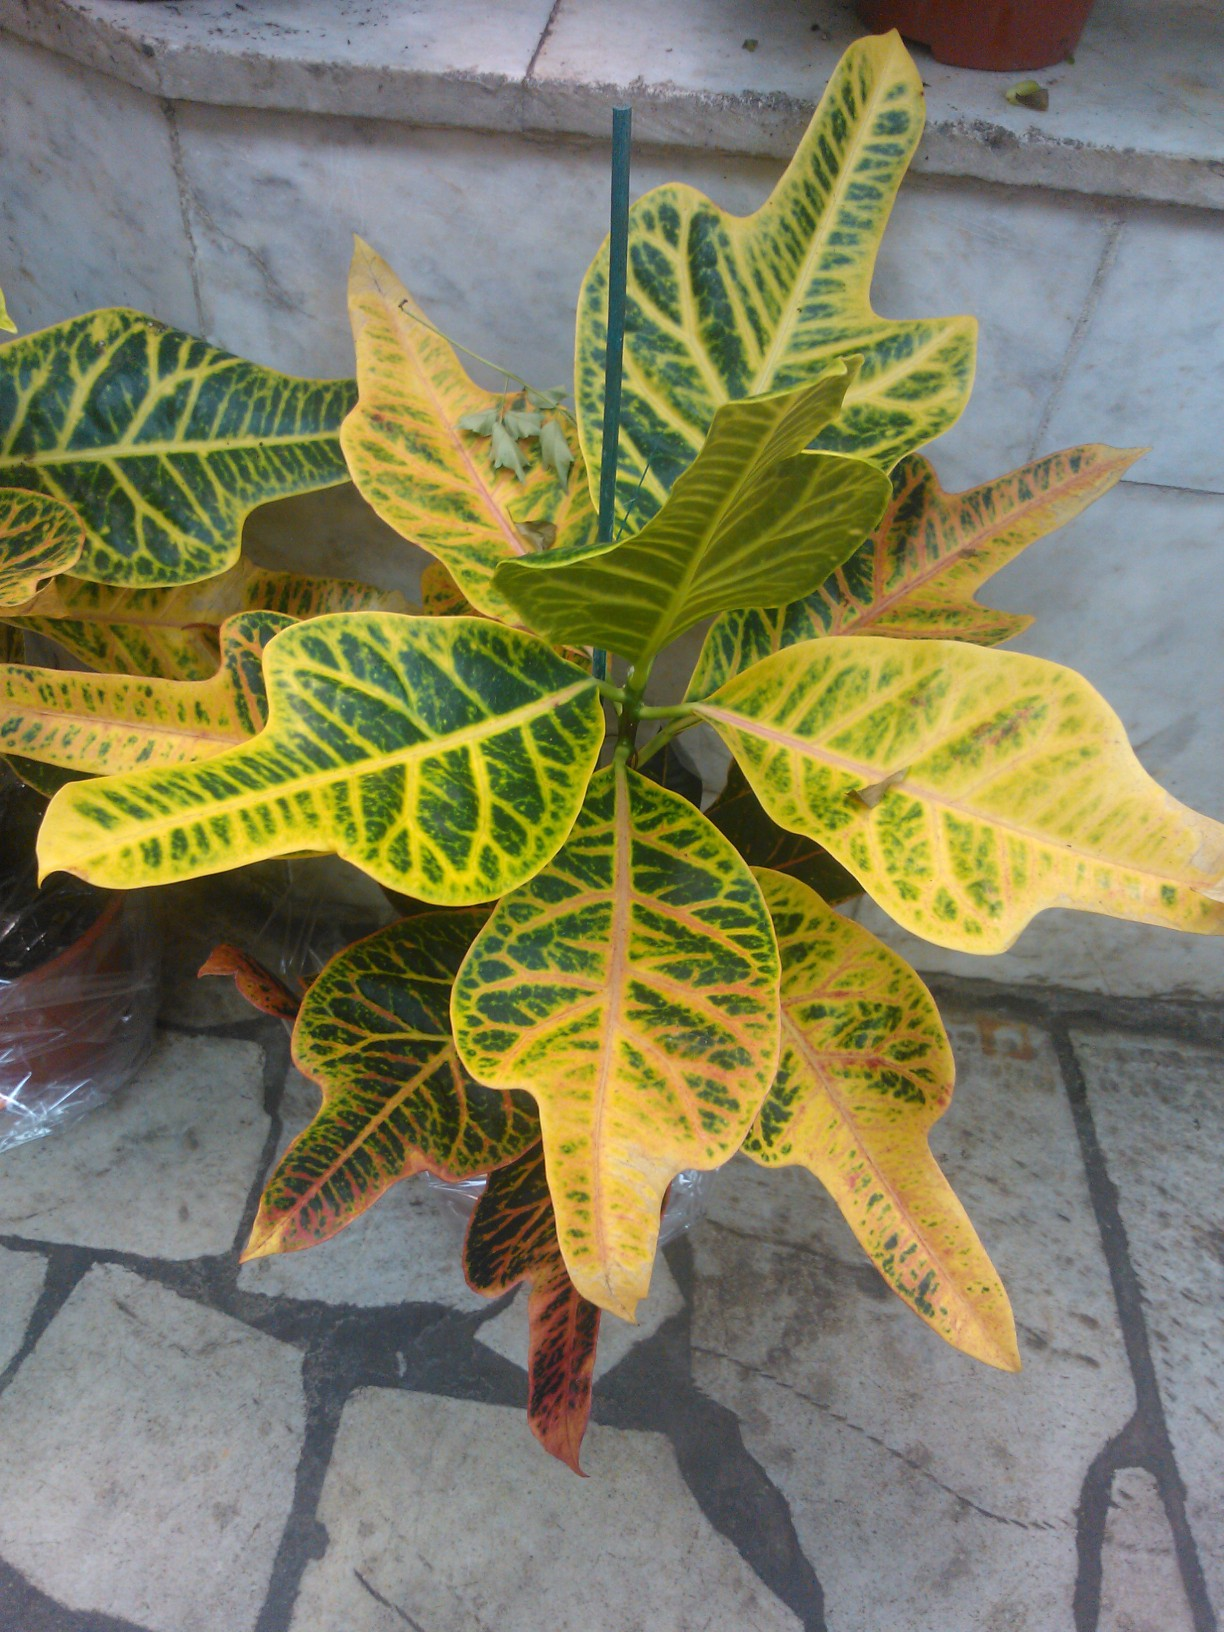 Croton Plant Care Tips Growing Planting Cutting Pruning Diseases Pests Leaves Seeds Add yellow to your garden to create a cheerful and serene environment. croton plant care tips growing